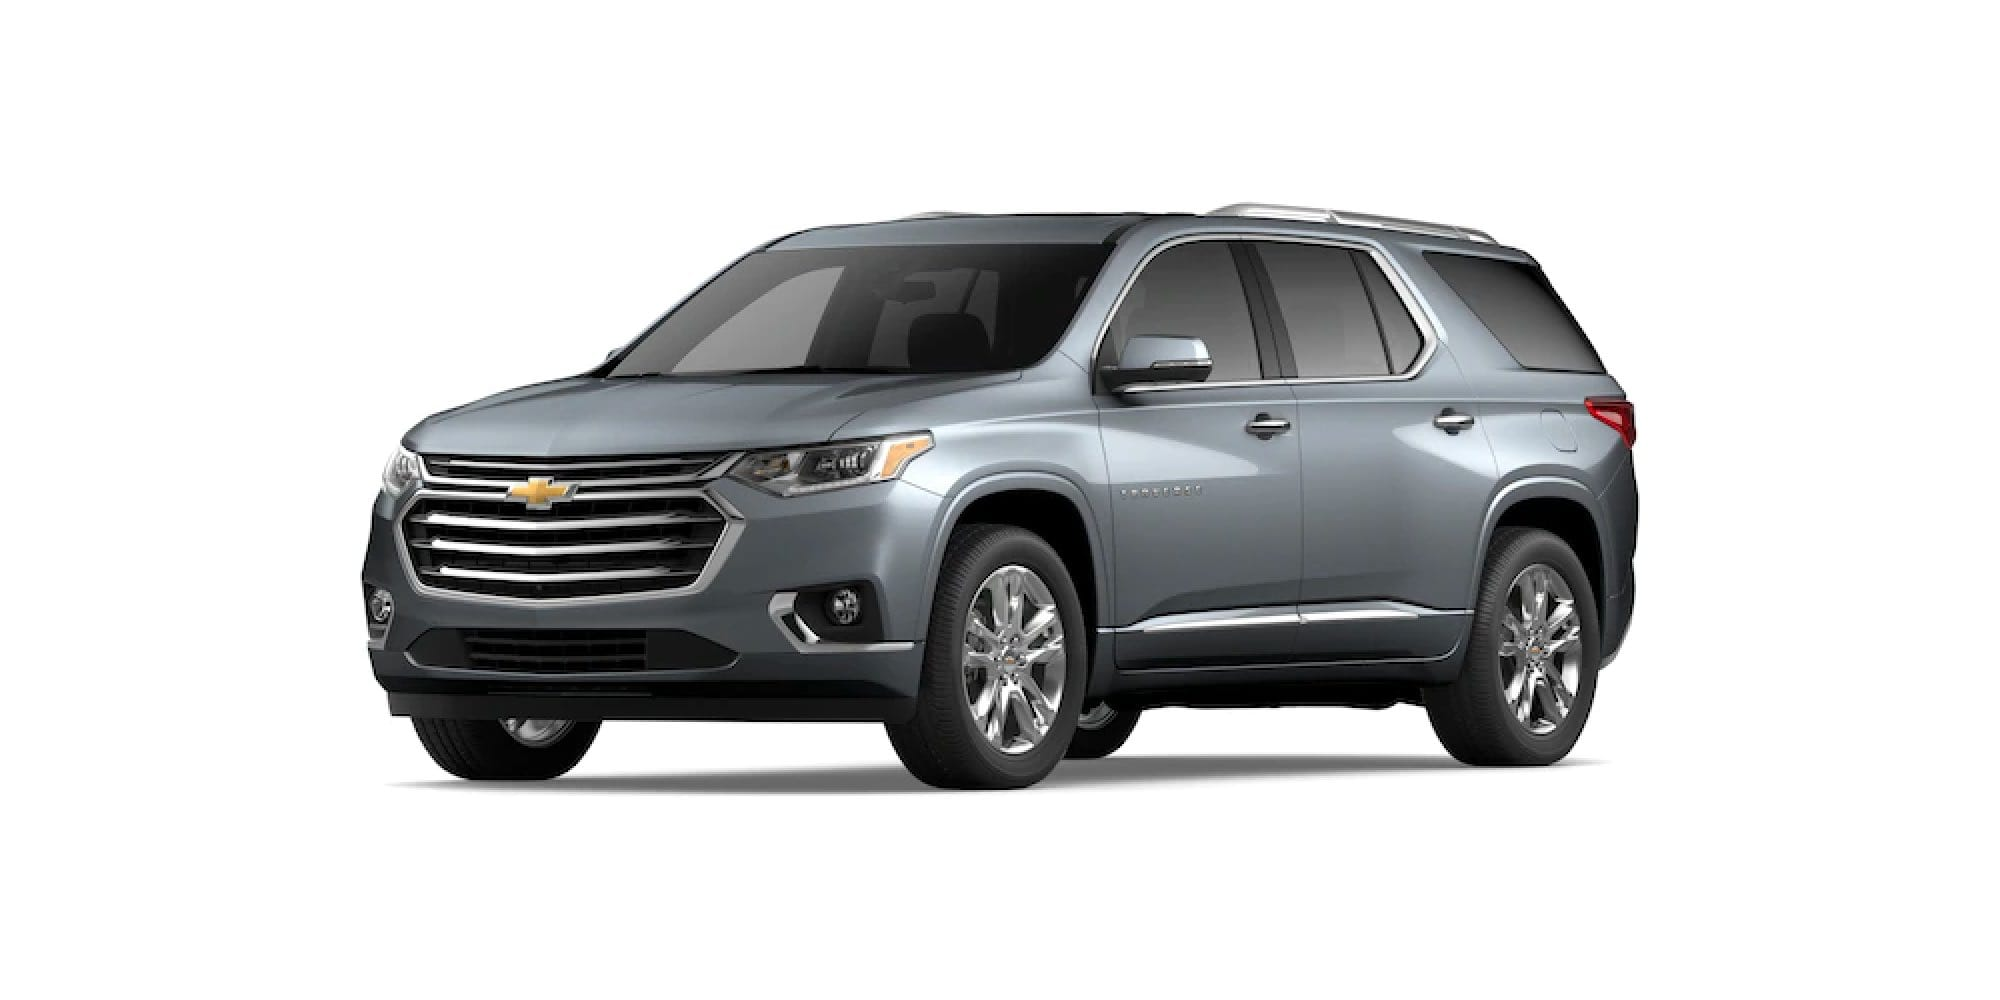 2021 Chevrolet Traverse in Satin Steel Metallic